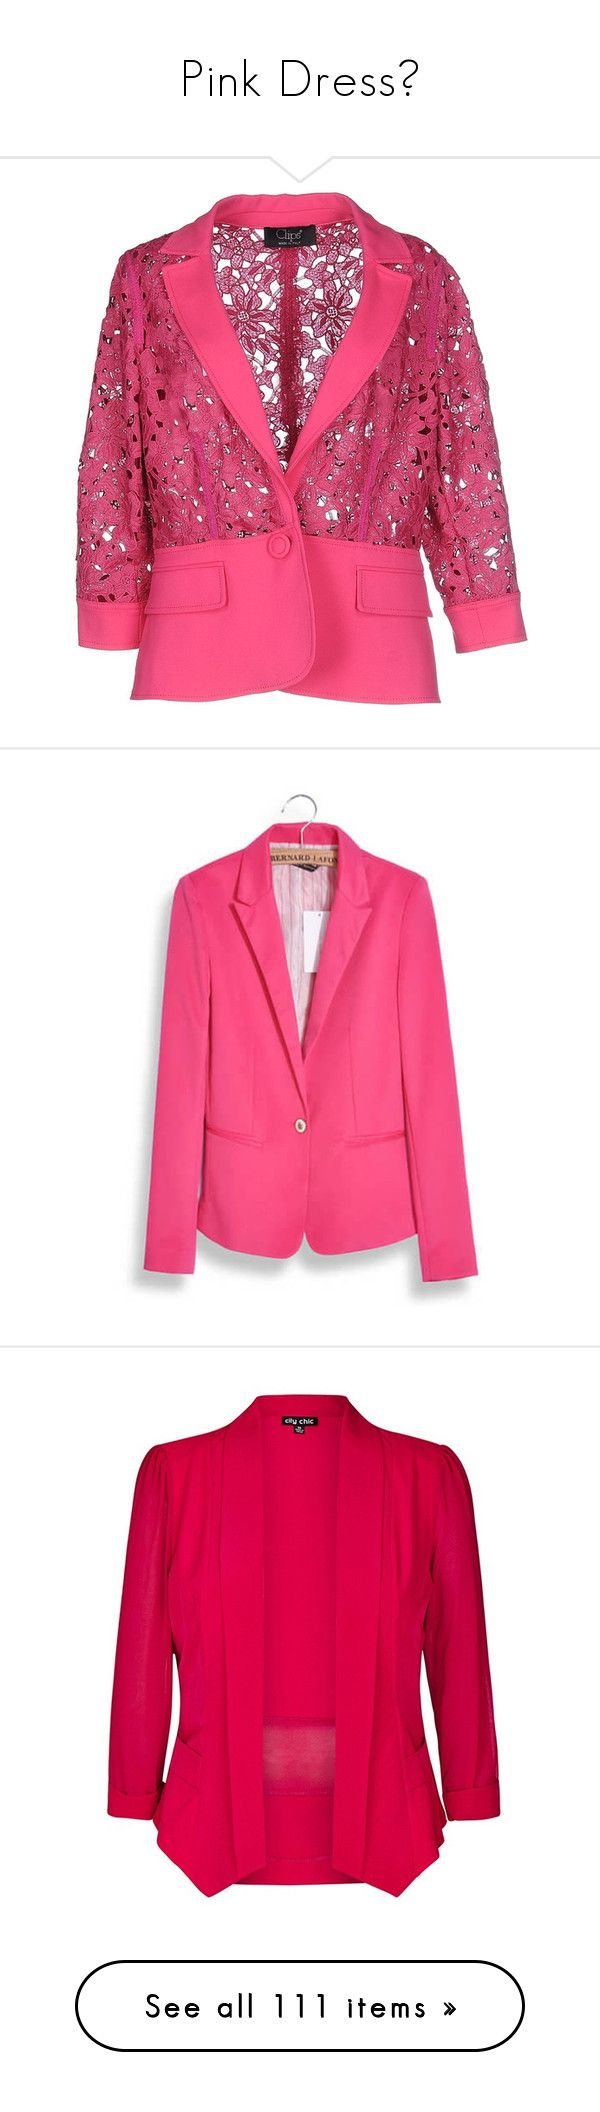 """""""Pink Dress🌸"""" by izzystarsparkle ❤ liked on Polyvore featuring outerwear, jackets, blazers, fuchsia, lapel blazer, blazer jacket, lace jackets, one-button blazers, pink lace blazer and pink blazer jacket"""